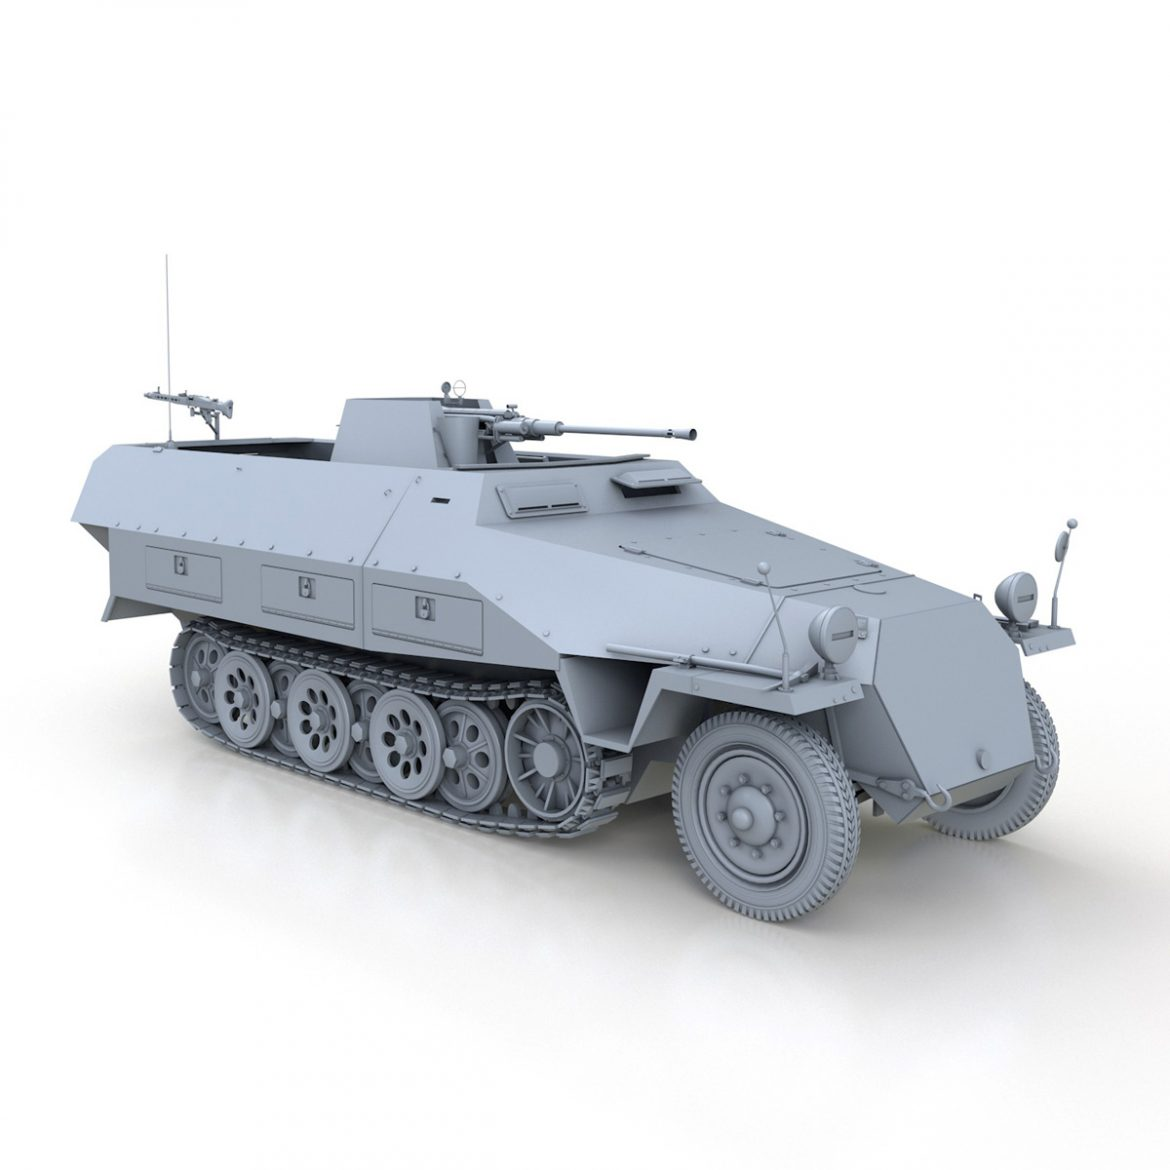 sd.kfz 251/17 ausf.d – anti-aircraft vehicle 3d model 3ds fbx c4d lwo obj 302955